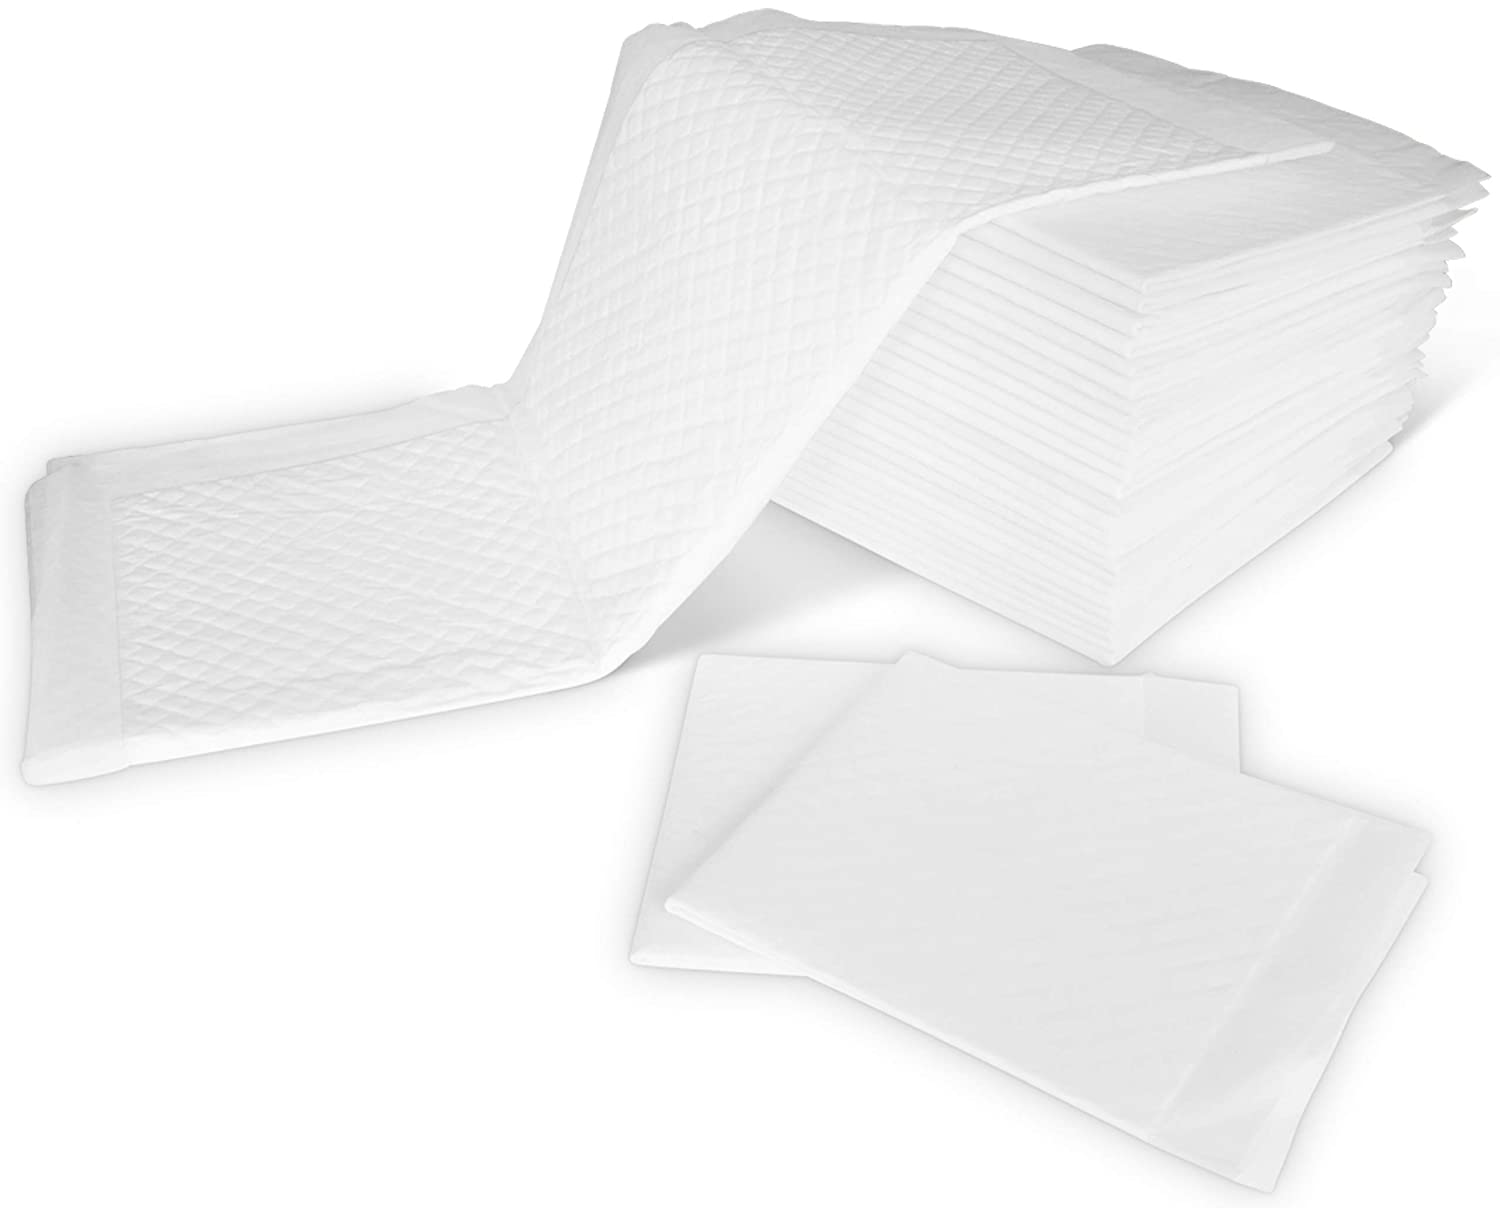 Underpads 25 Pack Baby Disposable Changing Pad 13x18Inch White Training Puppy Cover Portable Mat Diaper Table Bed Restroom Change Liner Waterproof Small